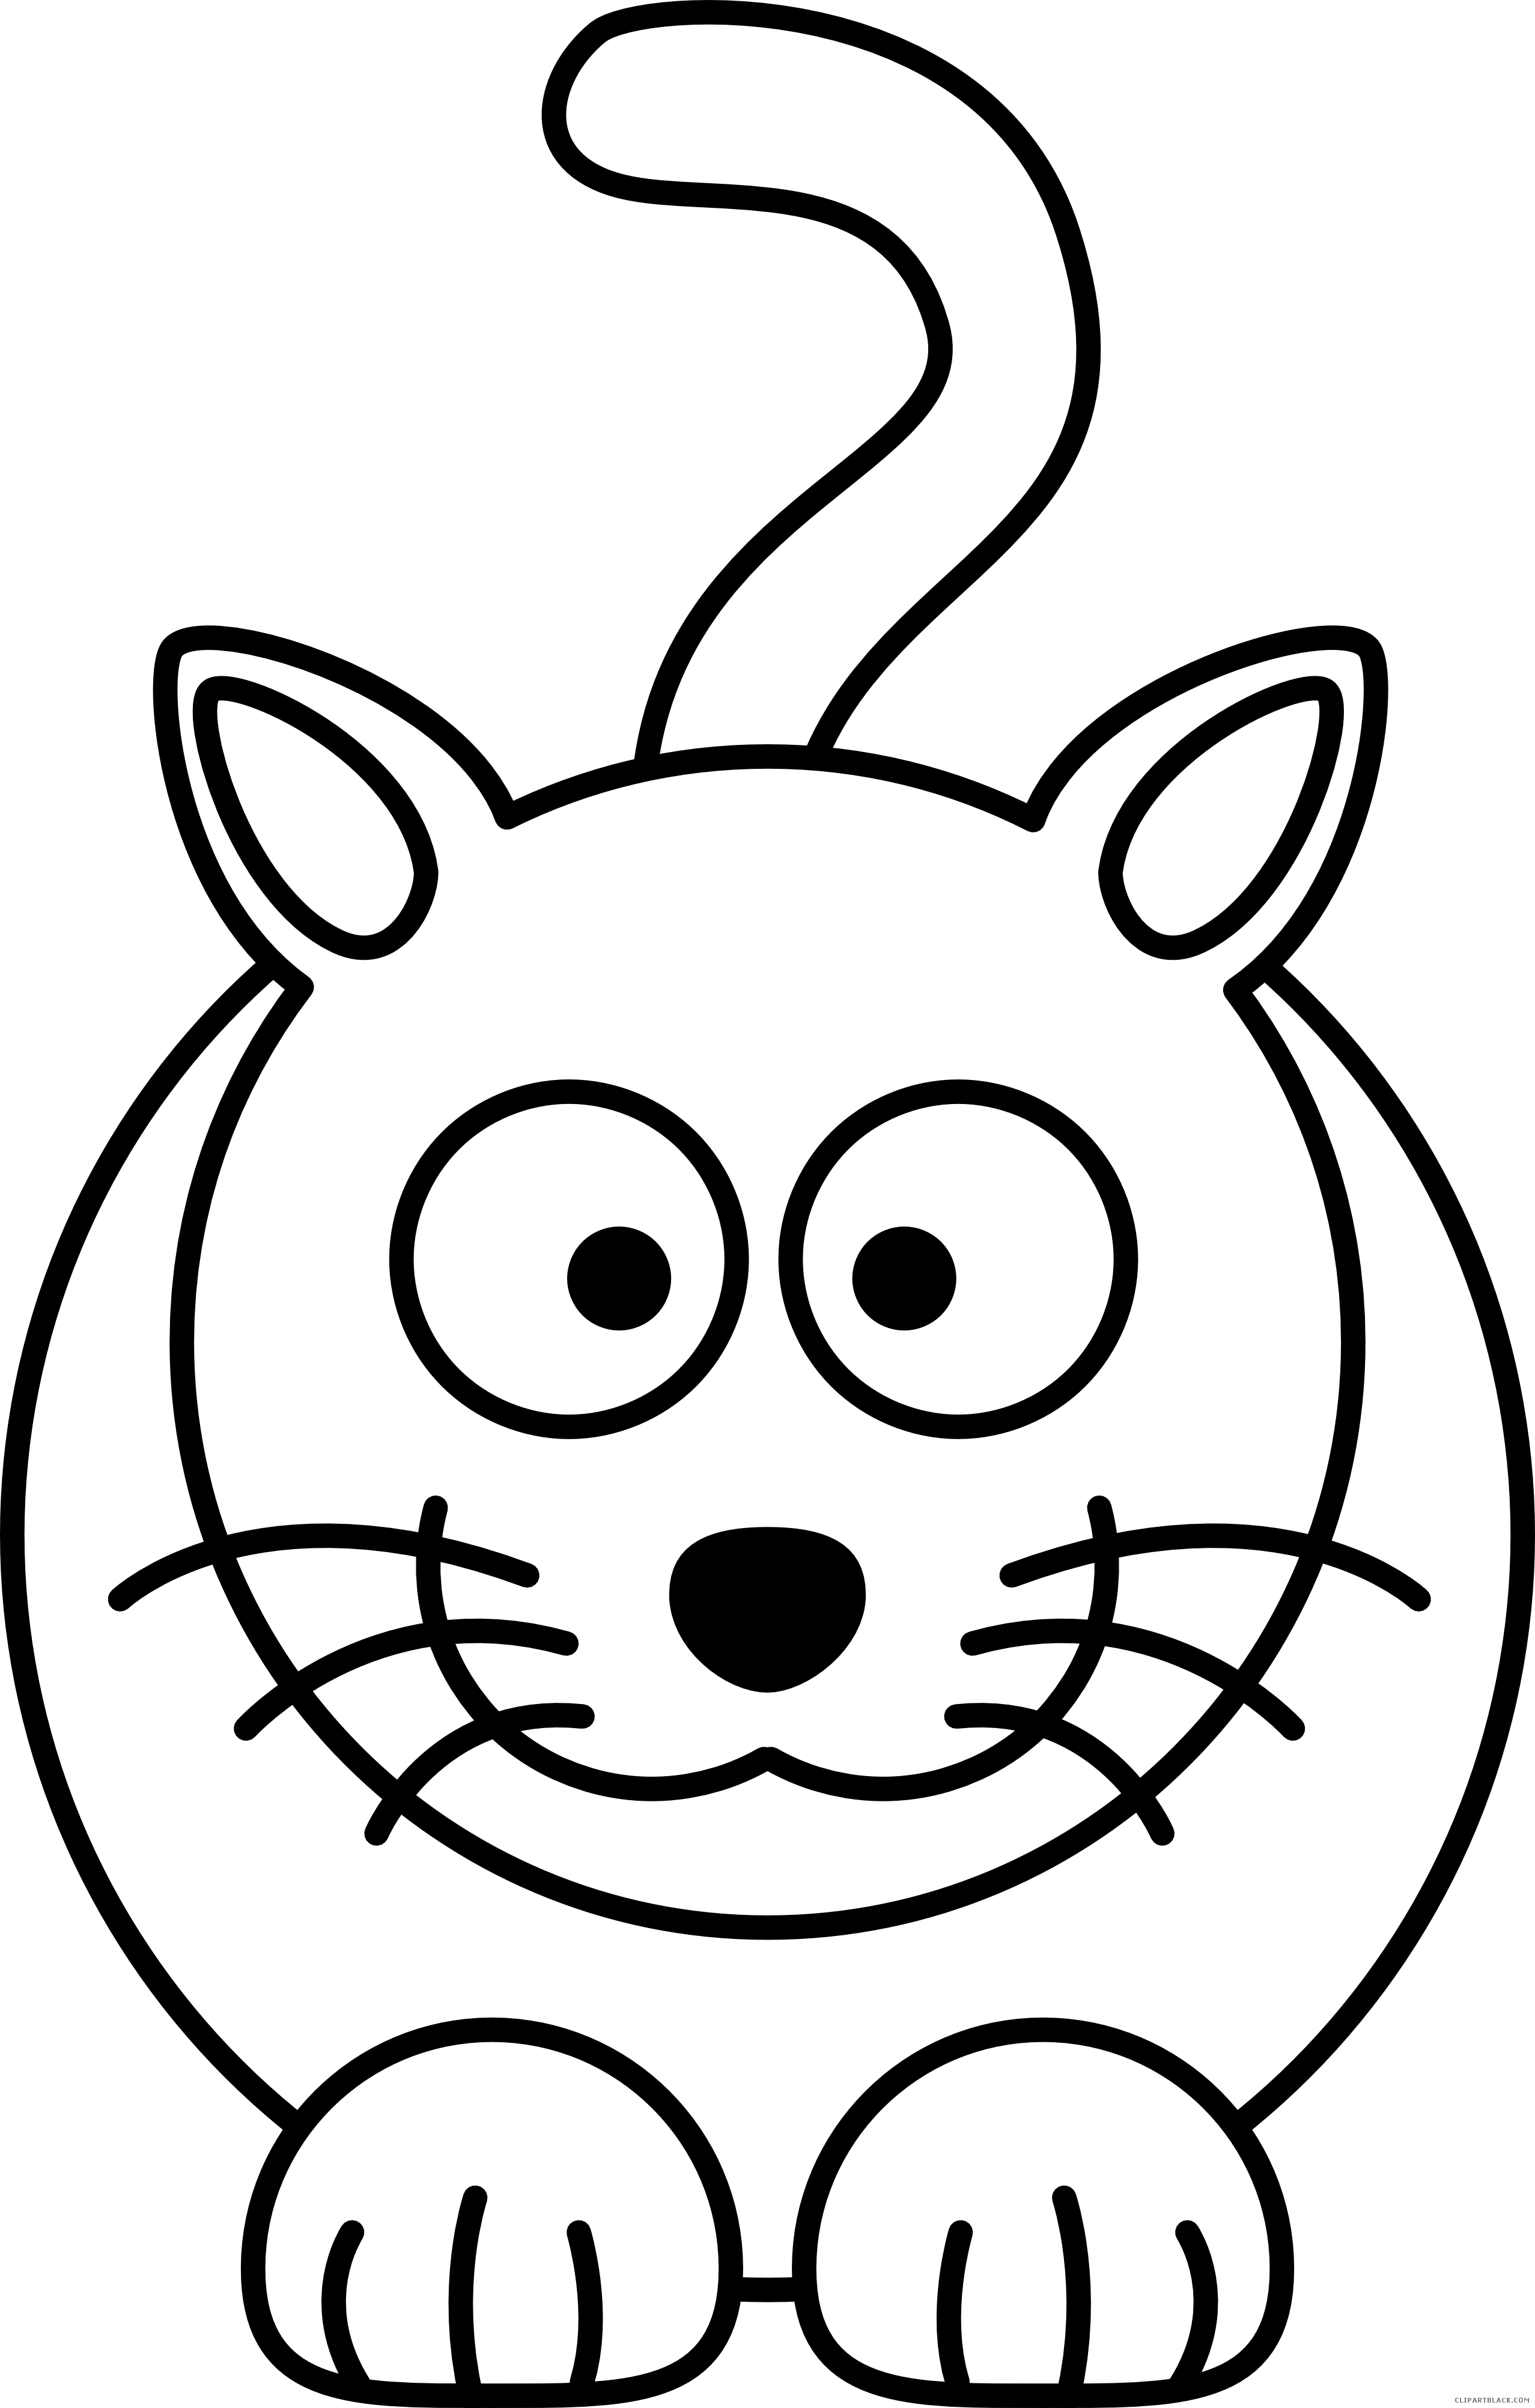 Cat outline clipart vector free Cat Outline Clipart - ClipartBlack.com vector free